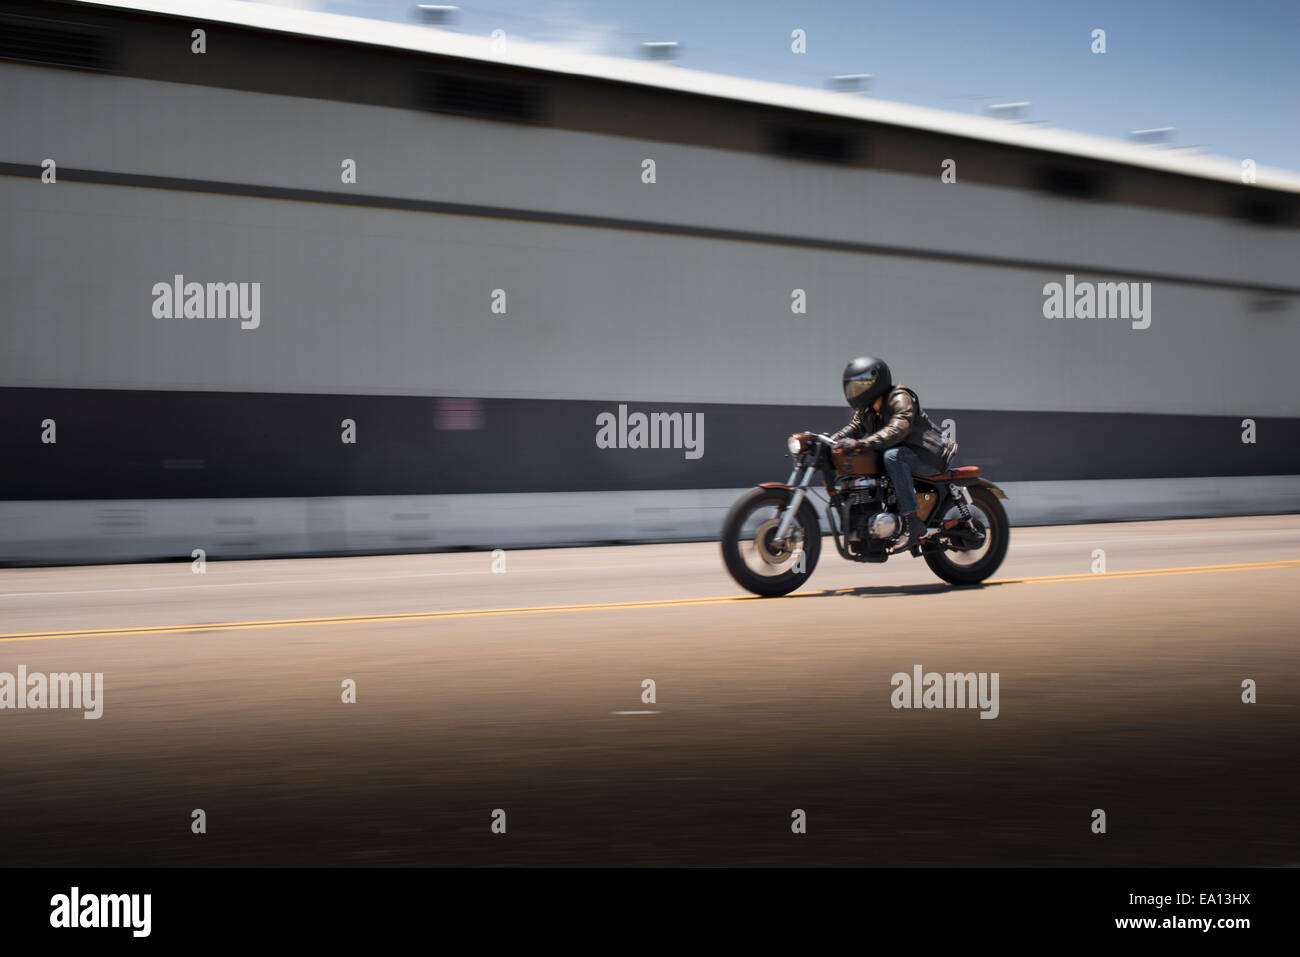 Blurred image of speeding male motorcyclist - Stock Image